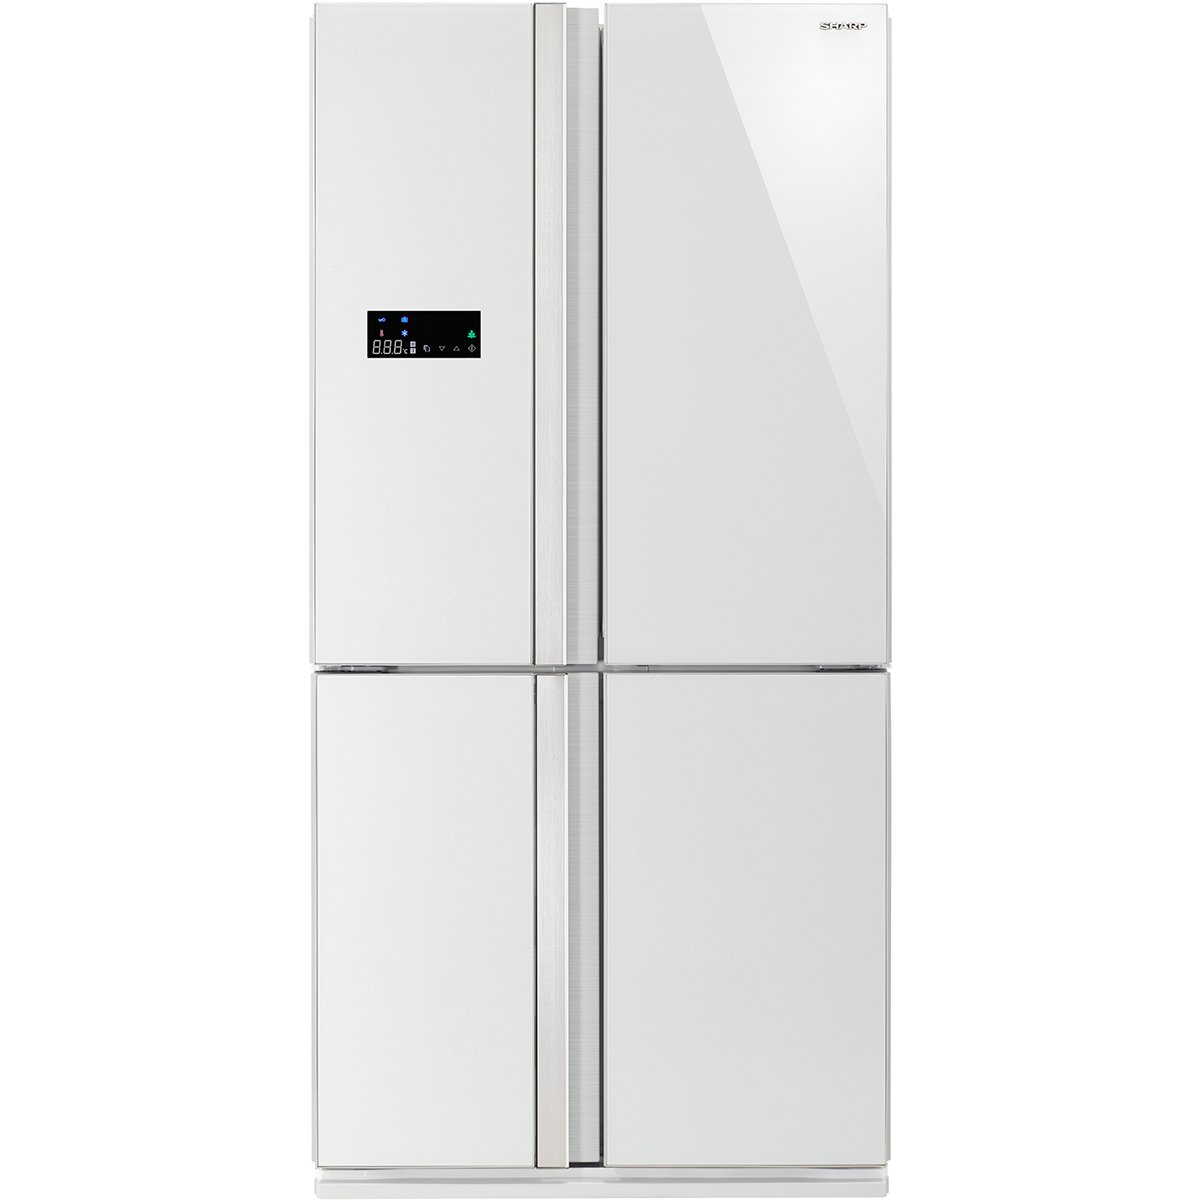 white french door refrigerator. white french door refrigerator